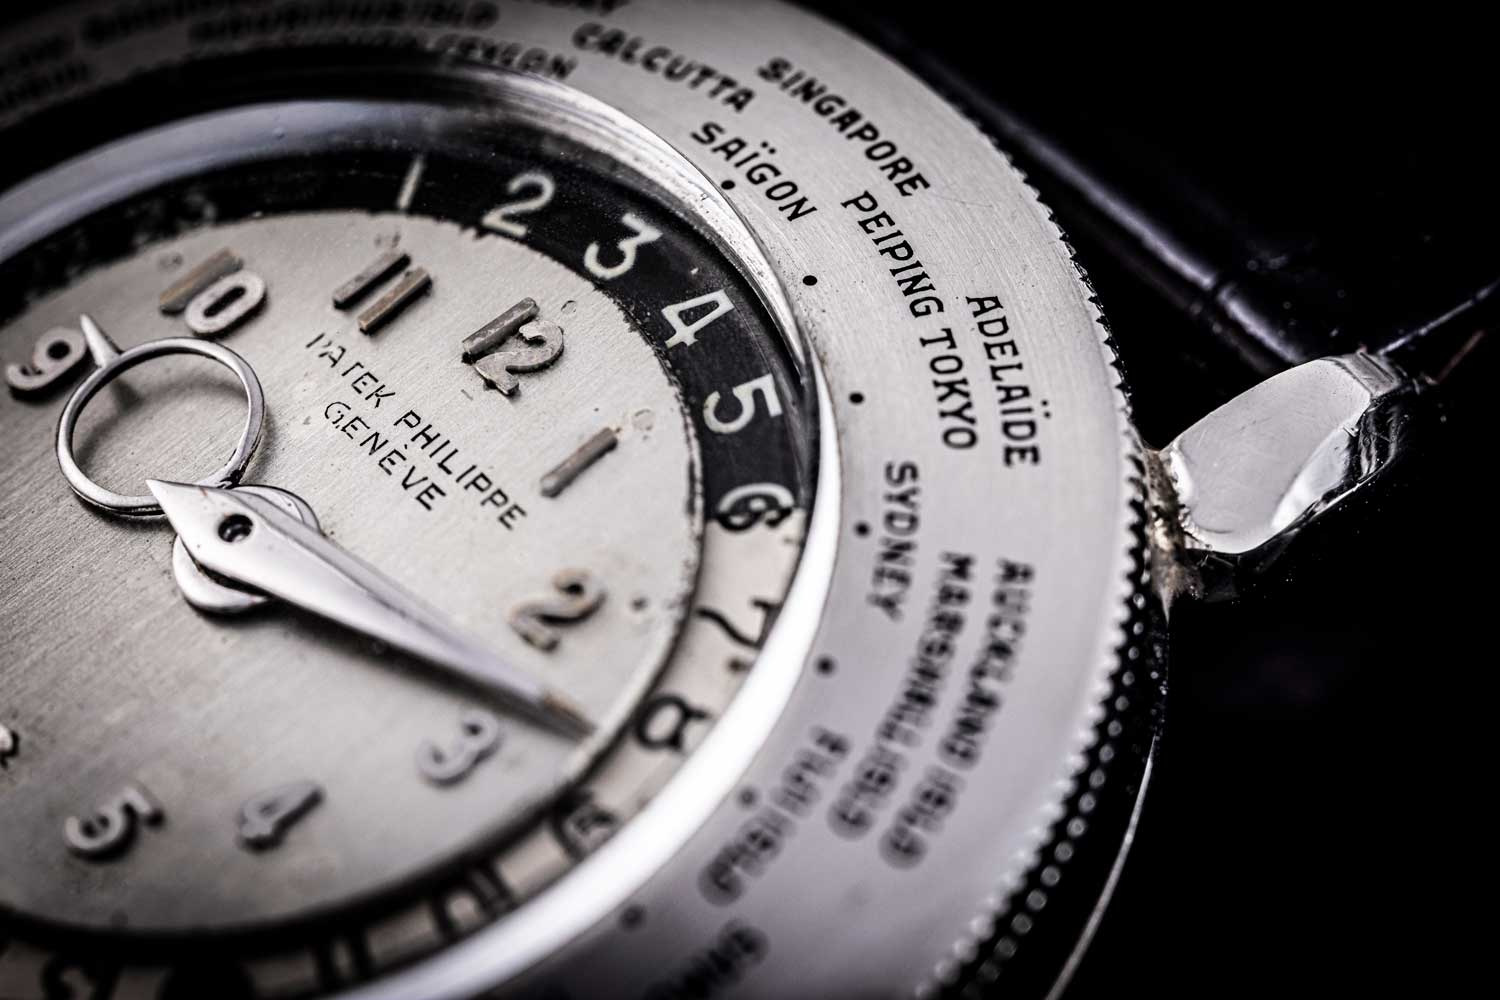 Made in 1946, the unique platinum reference 1415 HU sold for a record CHF 6.6 million at Antiquorum's auction in 2002